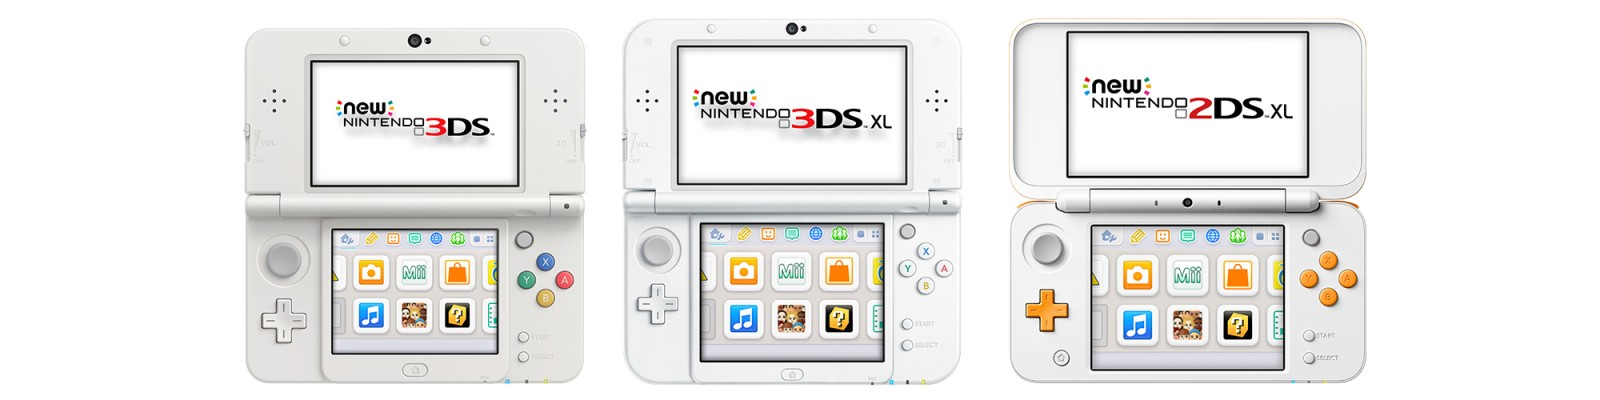 New Nintendo 3DS Family Support